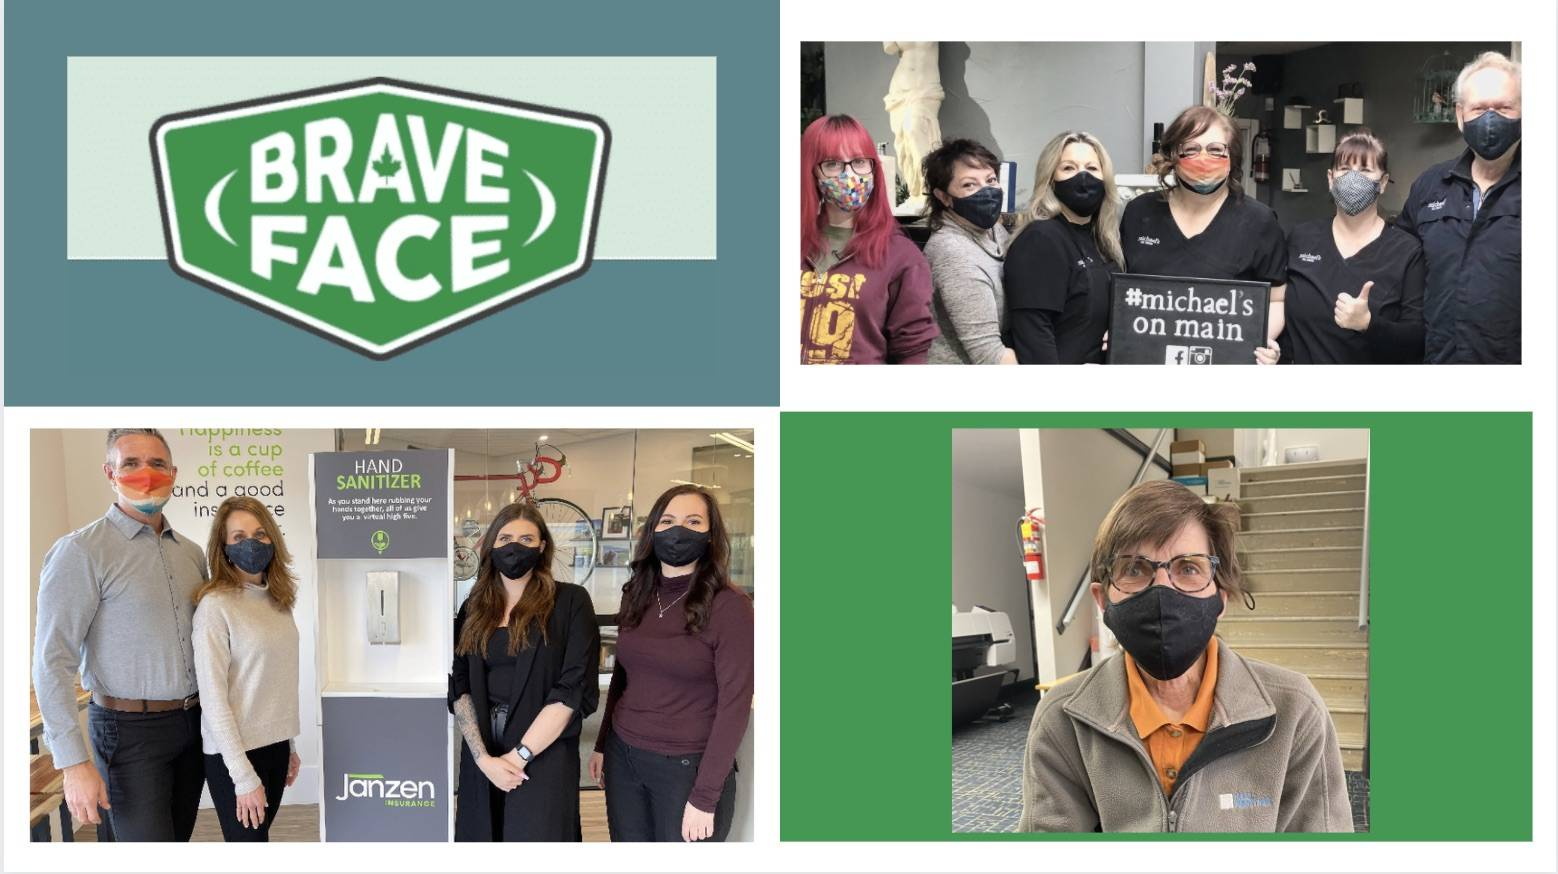 Dozens of local businesses from B.C., Alberta, and Yukon purchased masks to contribute to the campaign.Bottom left: Janzen Insurance Photo via Andrew Janzen, Bottom right: Hall Printing Photo via: Janice Underwood, Top right: Michael's on Main Photo via: Chris Franklin.